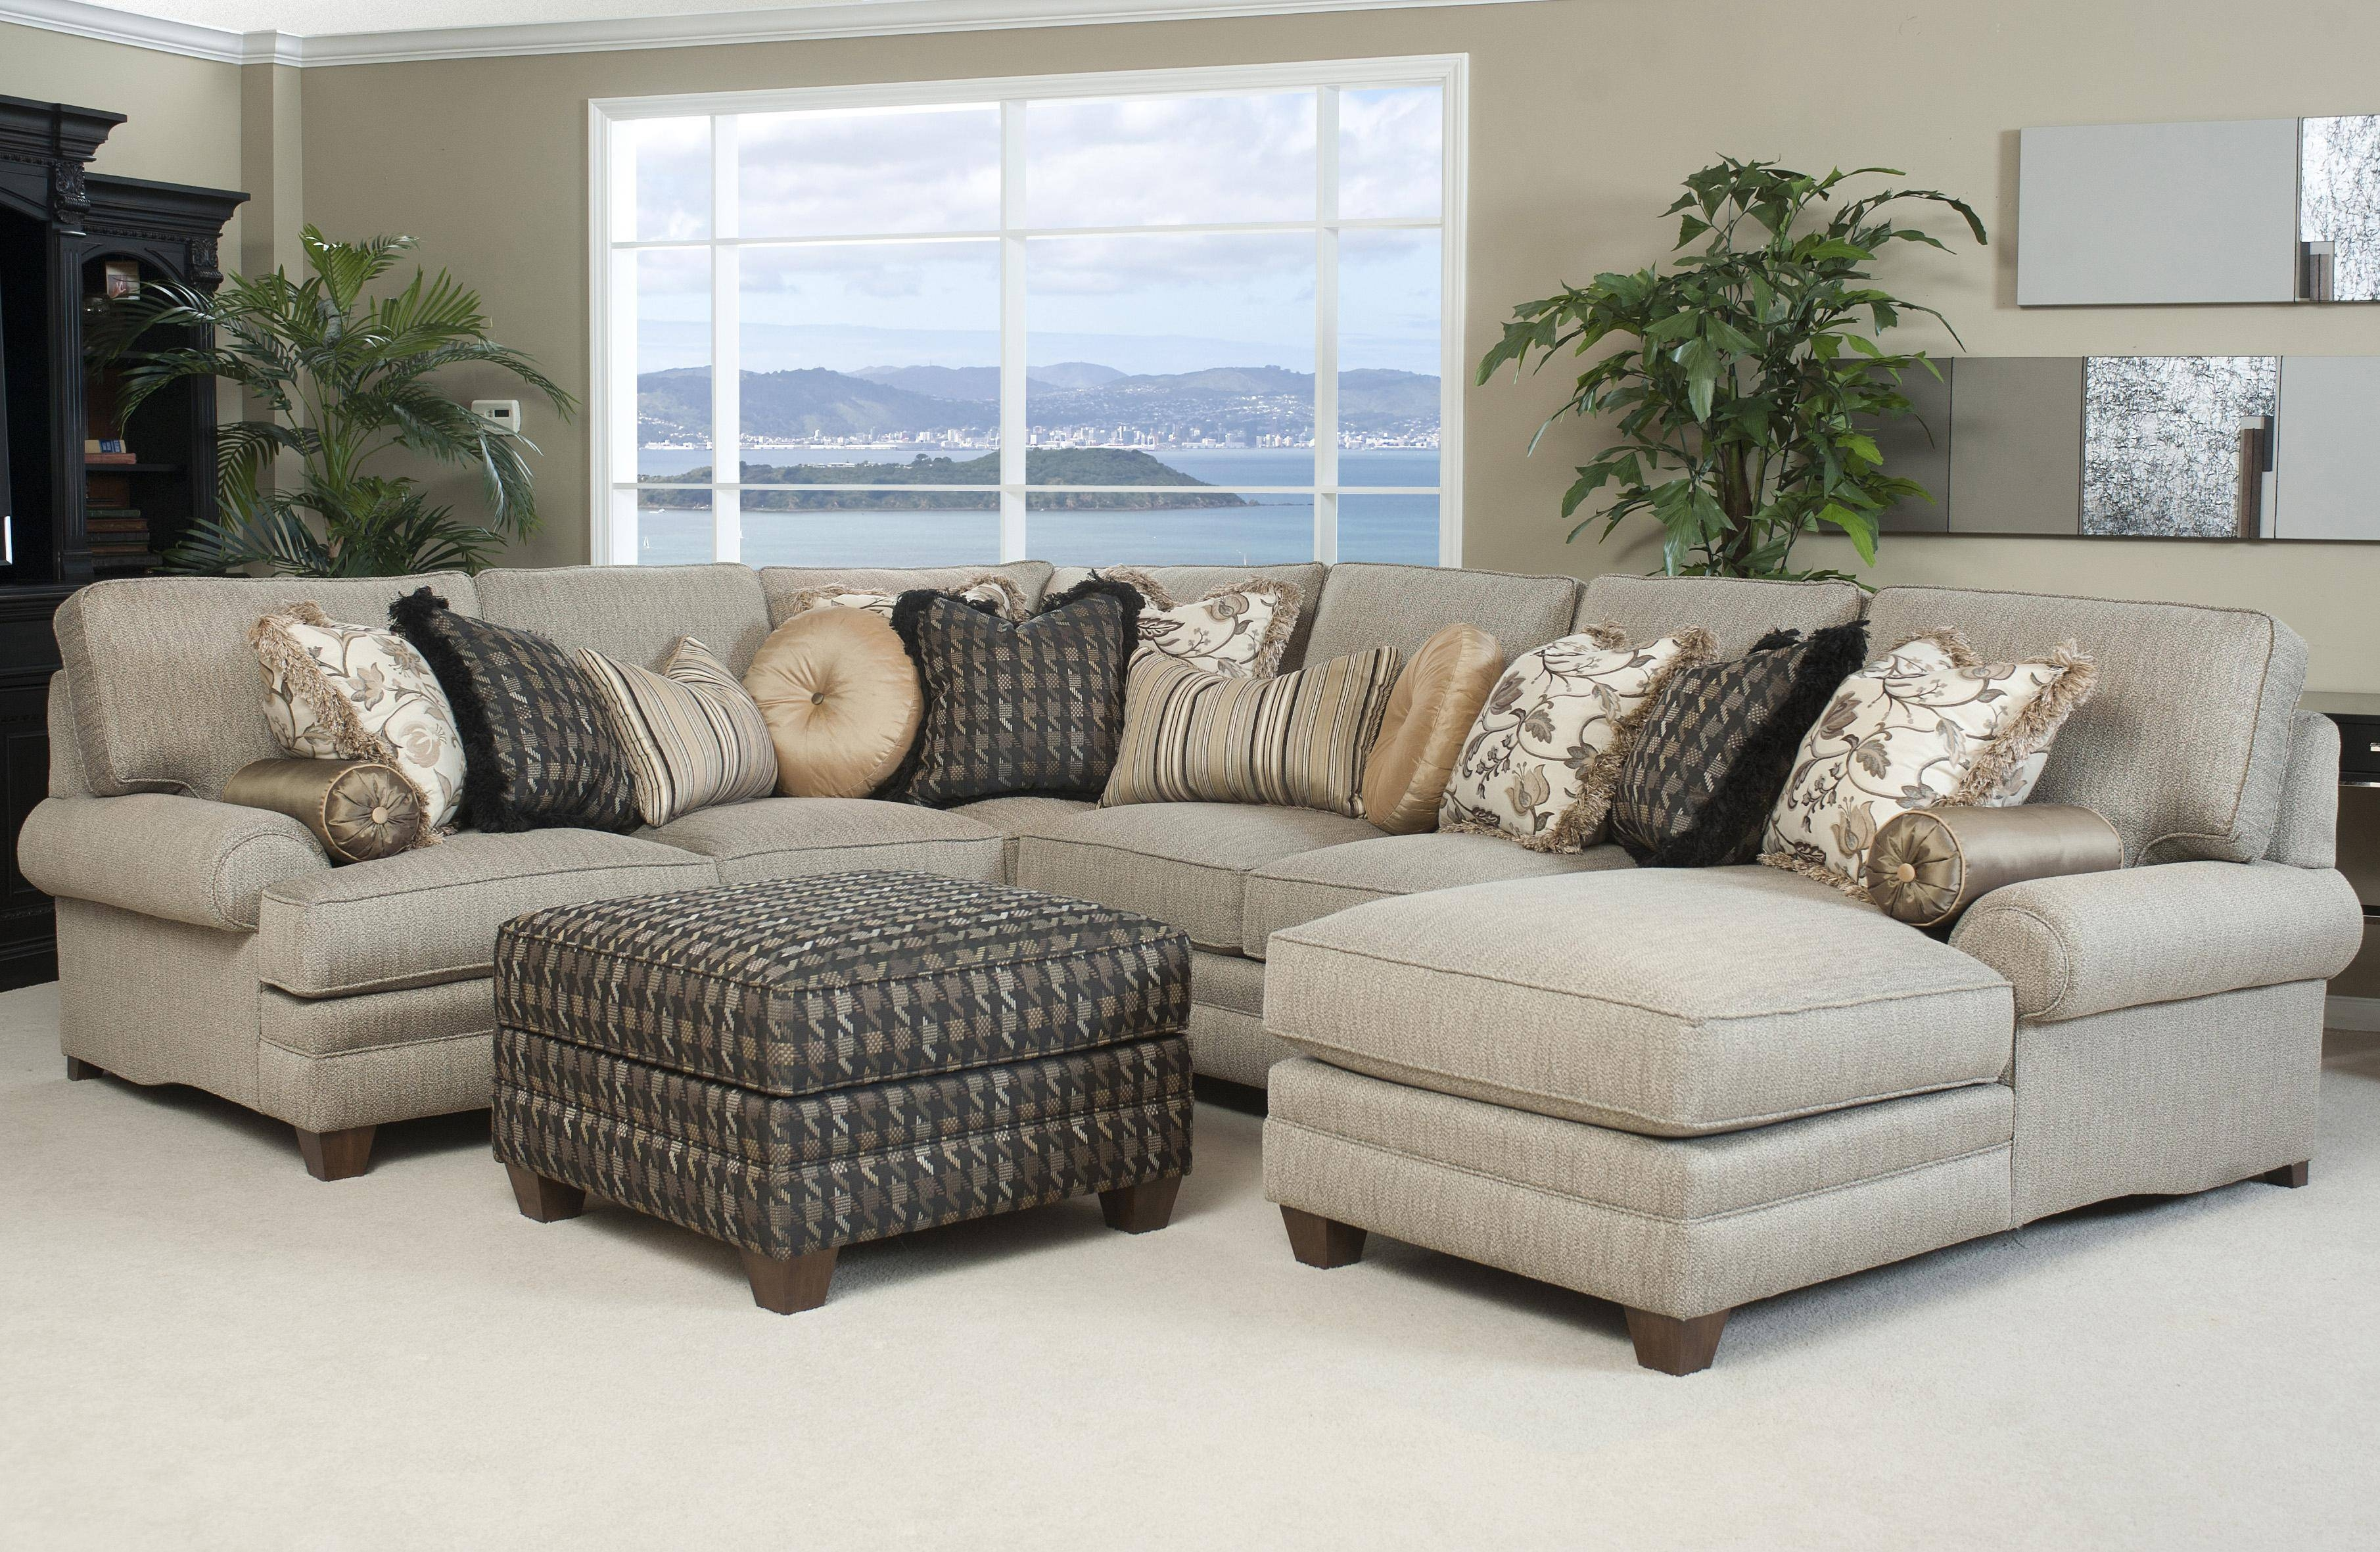 Traditional Styled Sectional Sofa With Comfortable Pillowed Seat intended for Comfortable Sofas And Chairs (Image 29 of 30)